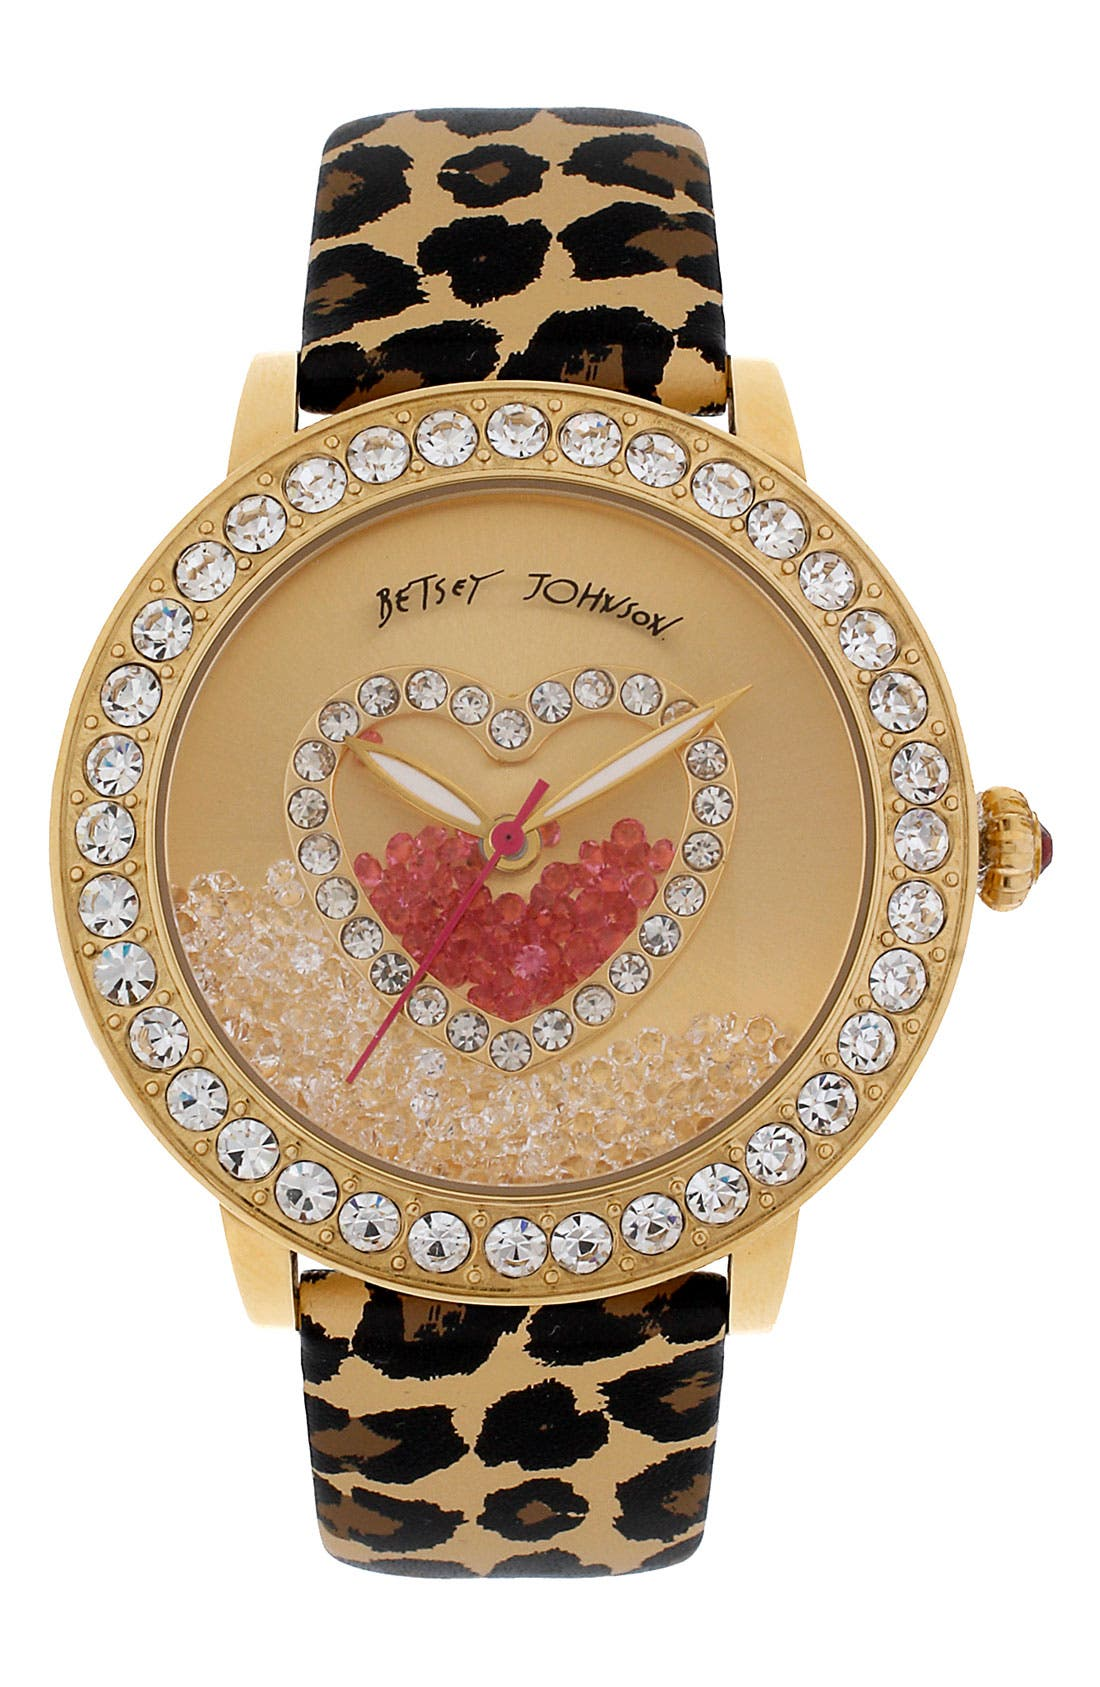 Main Image - Betsey Johnson Loose Crystal Dial Watch, 42mm